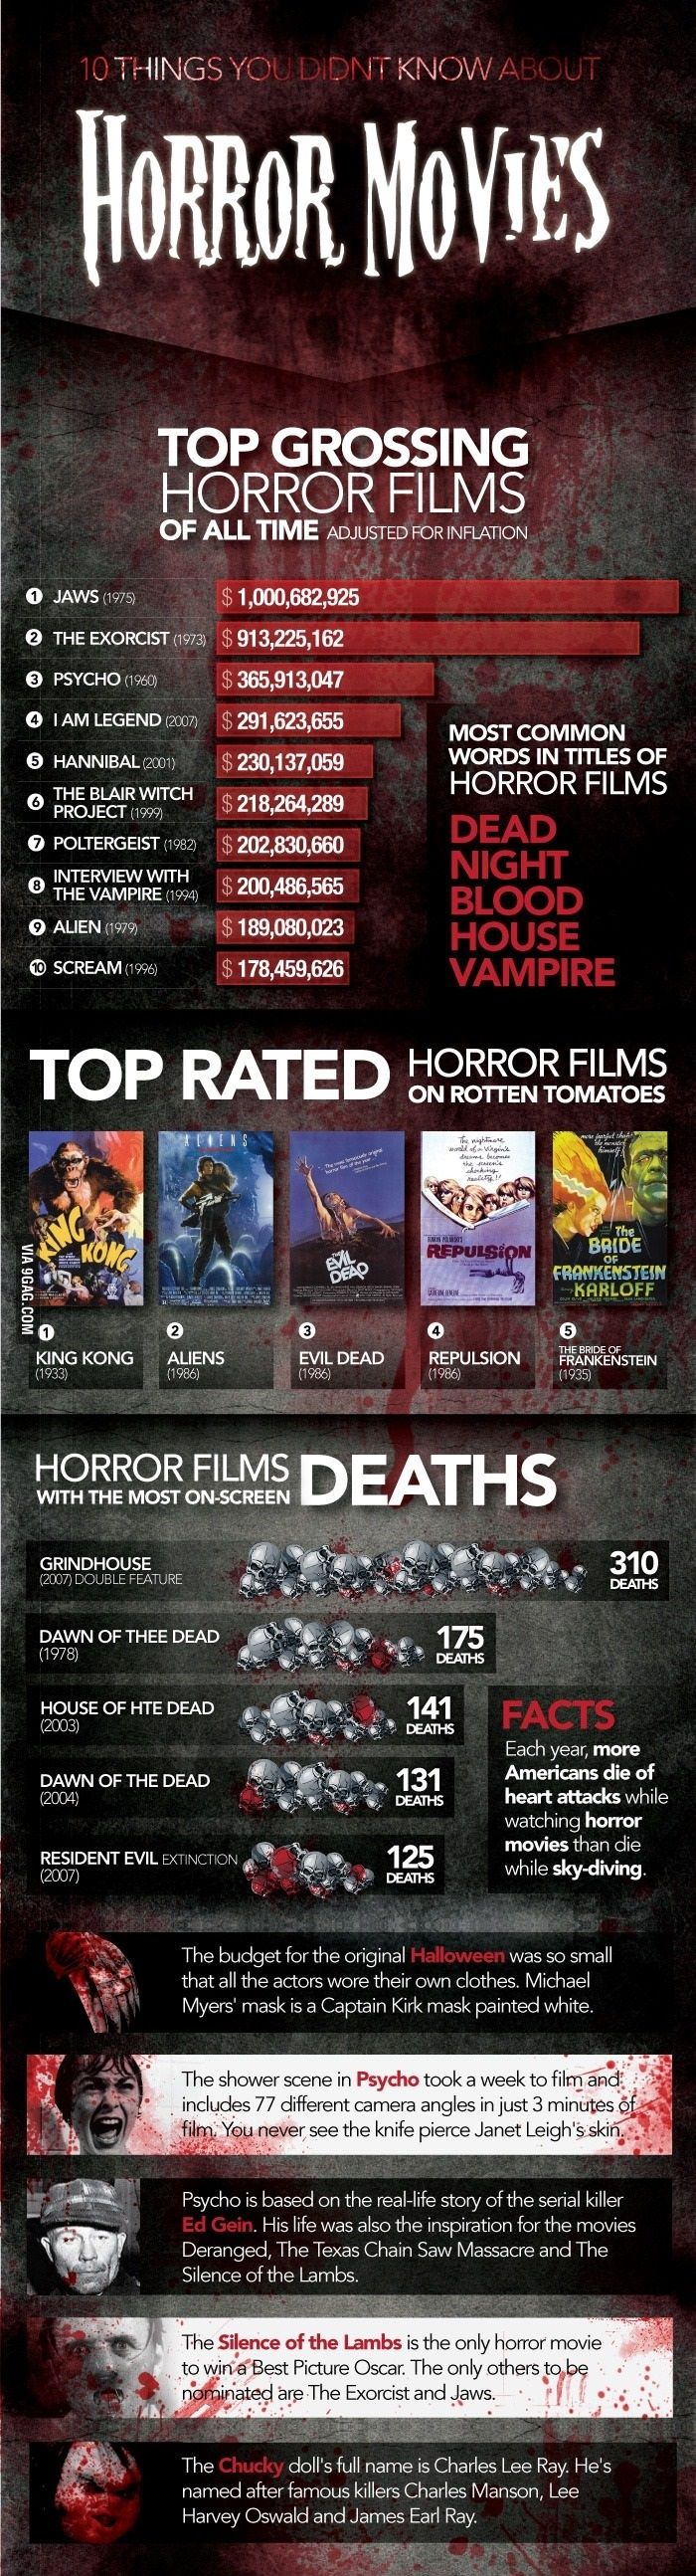 Interesting horror movie facts 6